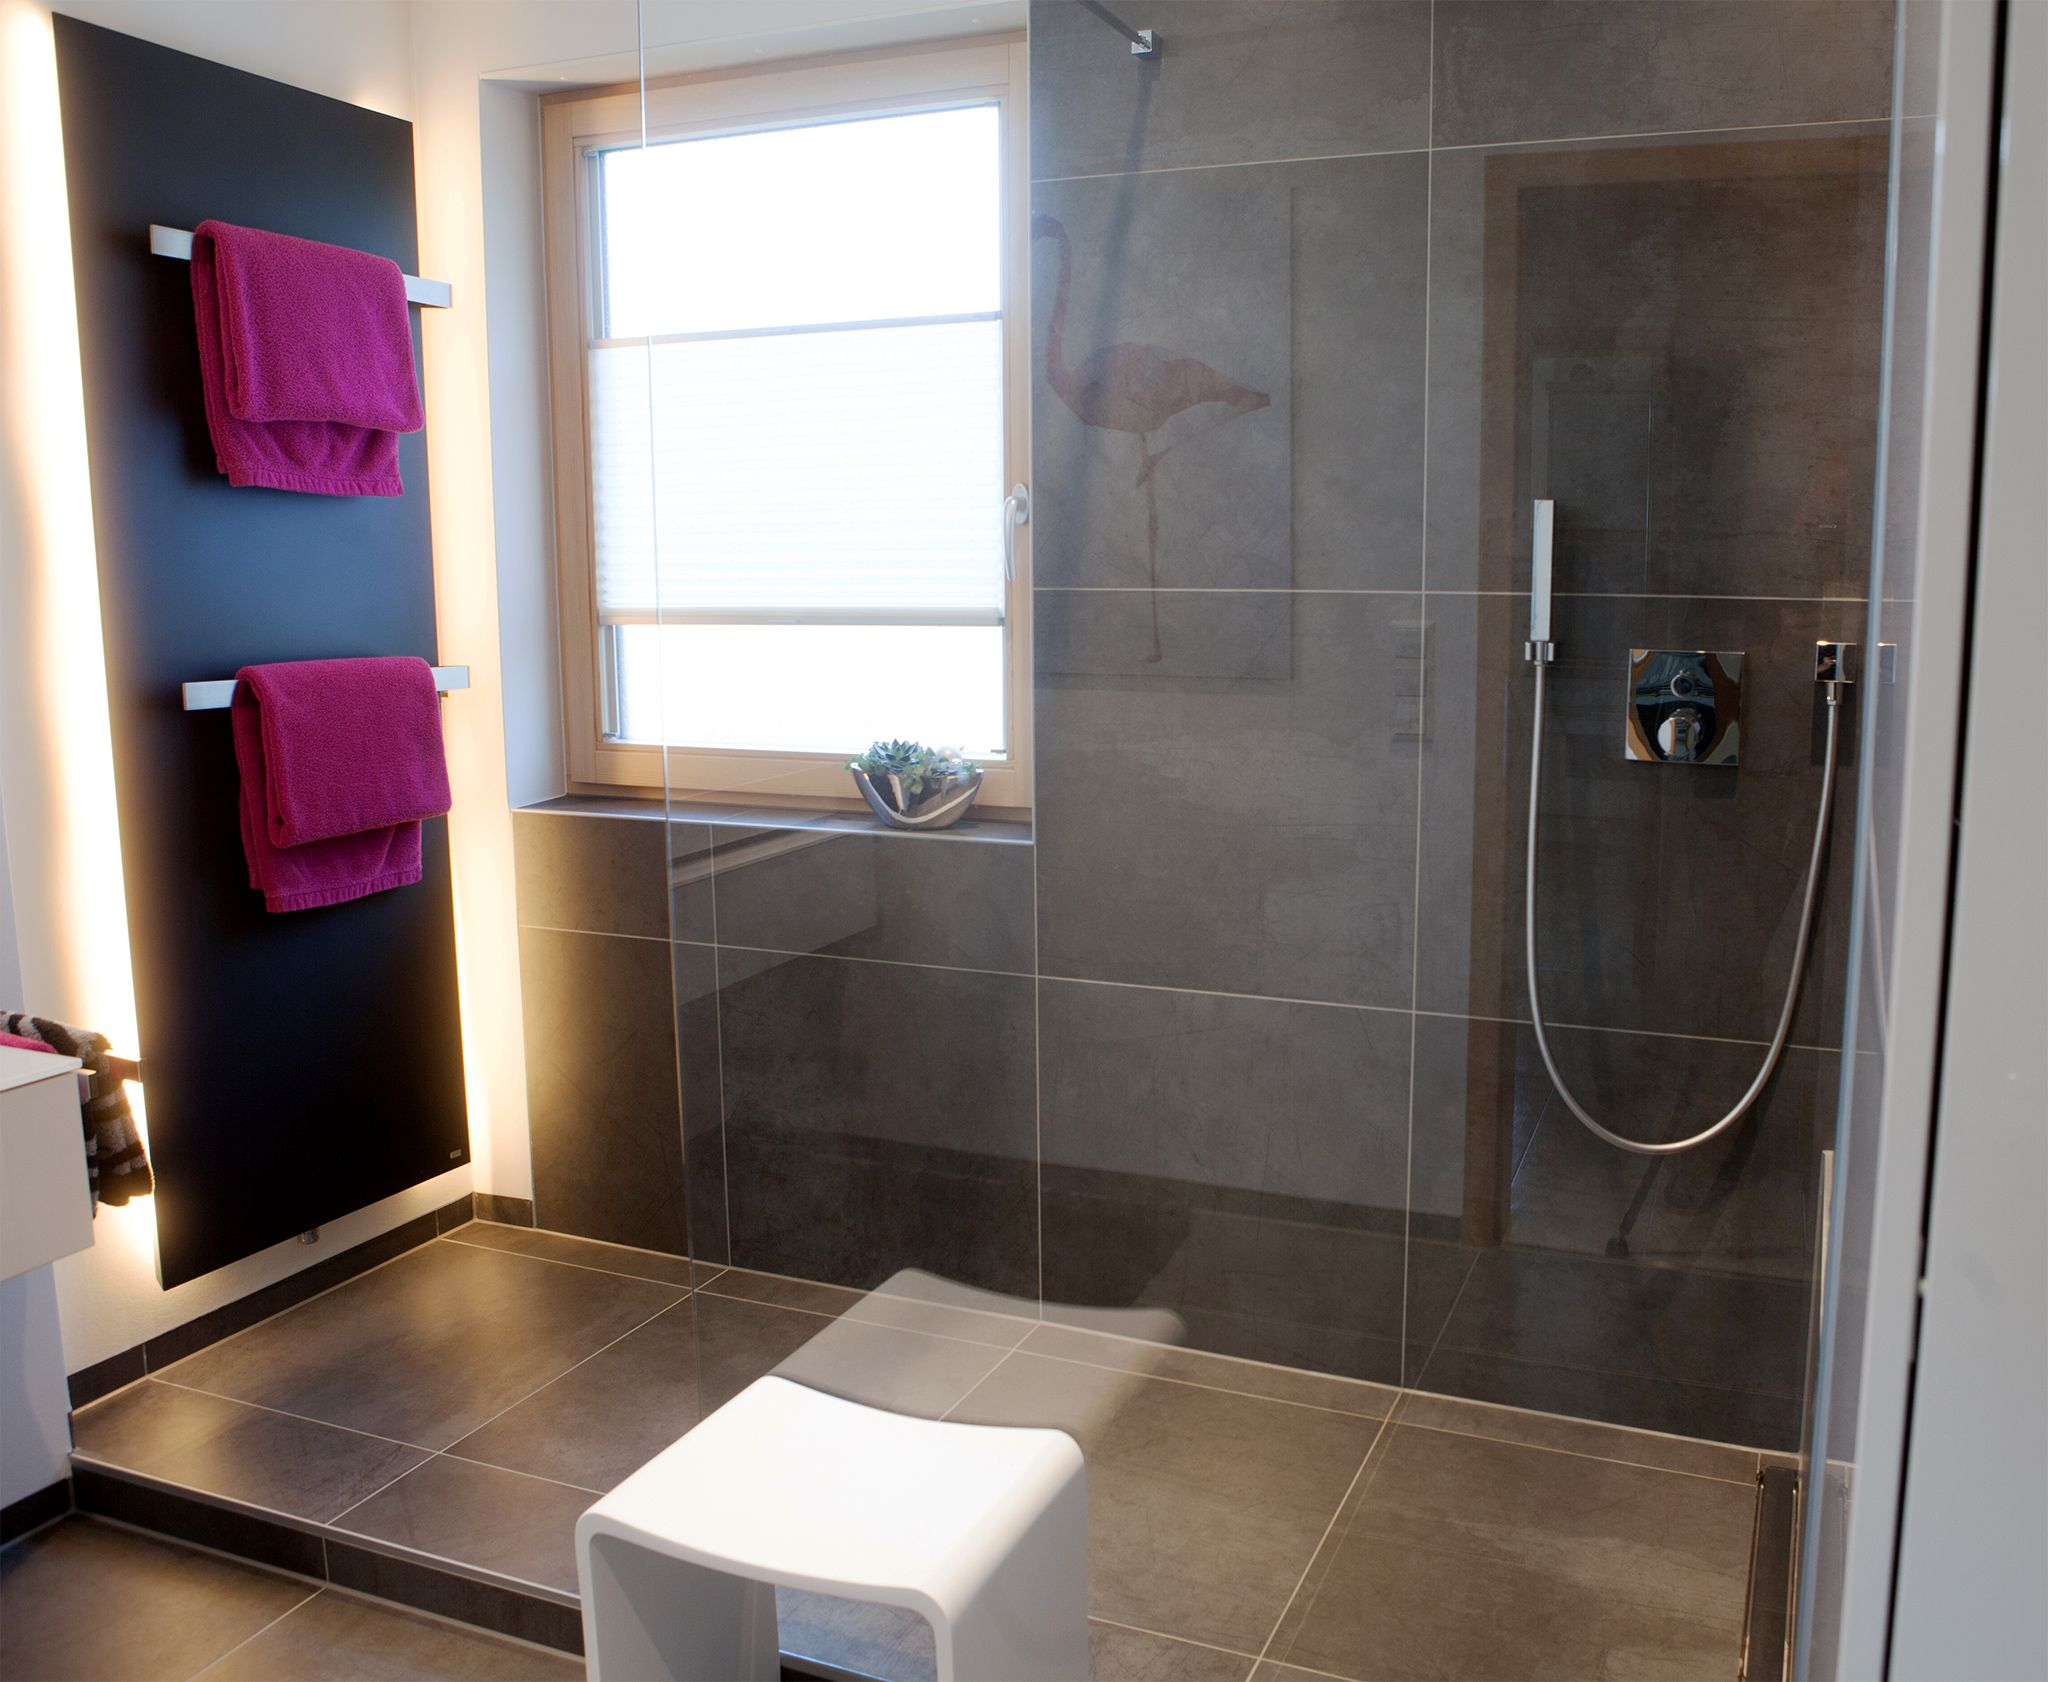 gro e dusche mit kleinem podest badezimmer der vitus k nig gmbh co kg in aalen pinterest. Black Bedroom Furniture Sets. Home Design Ideas